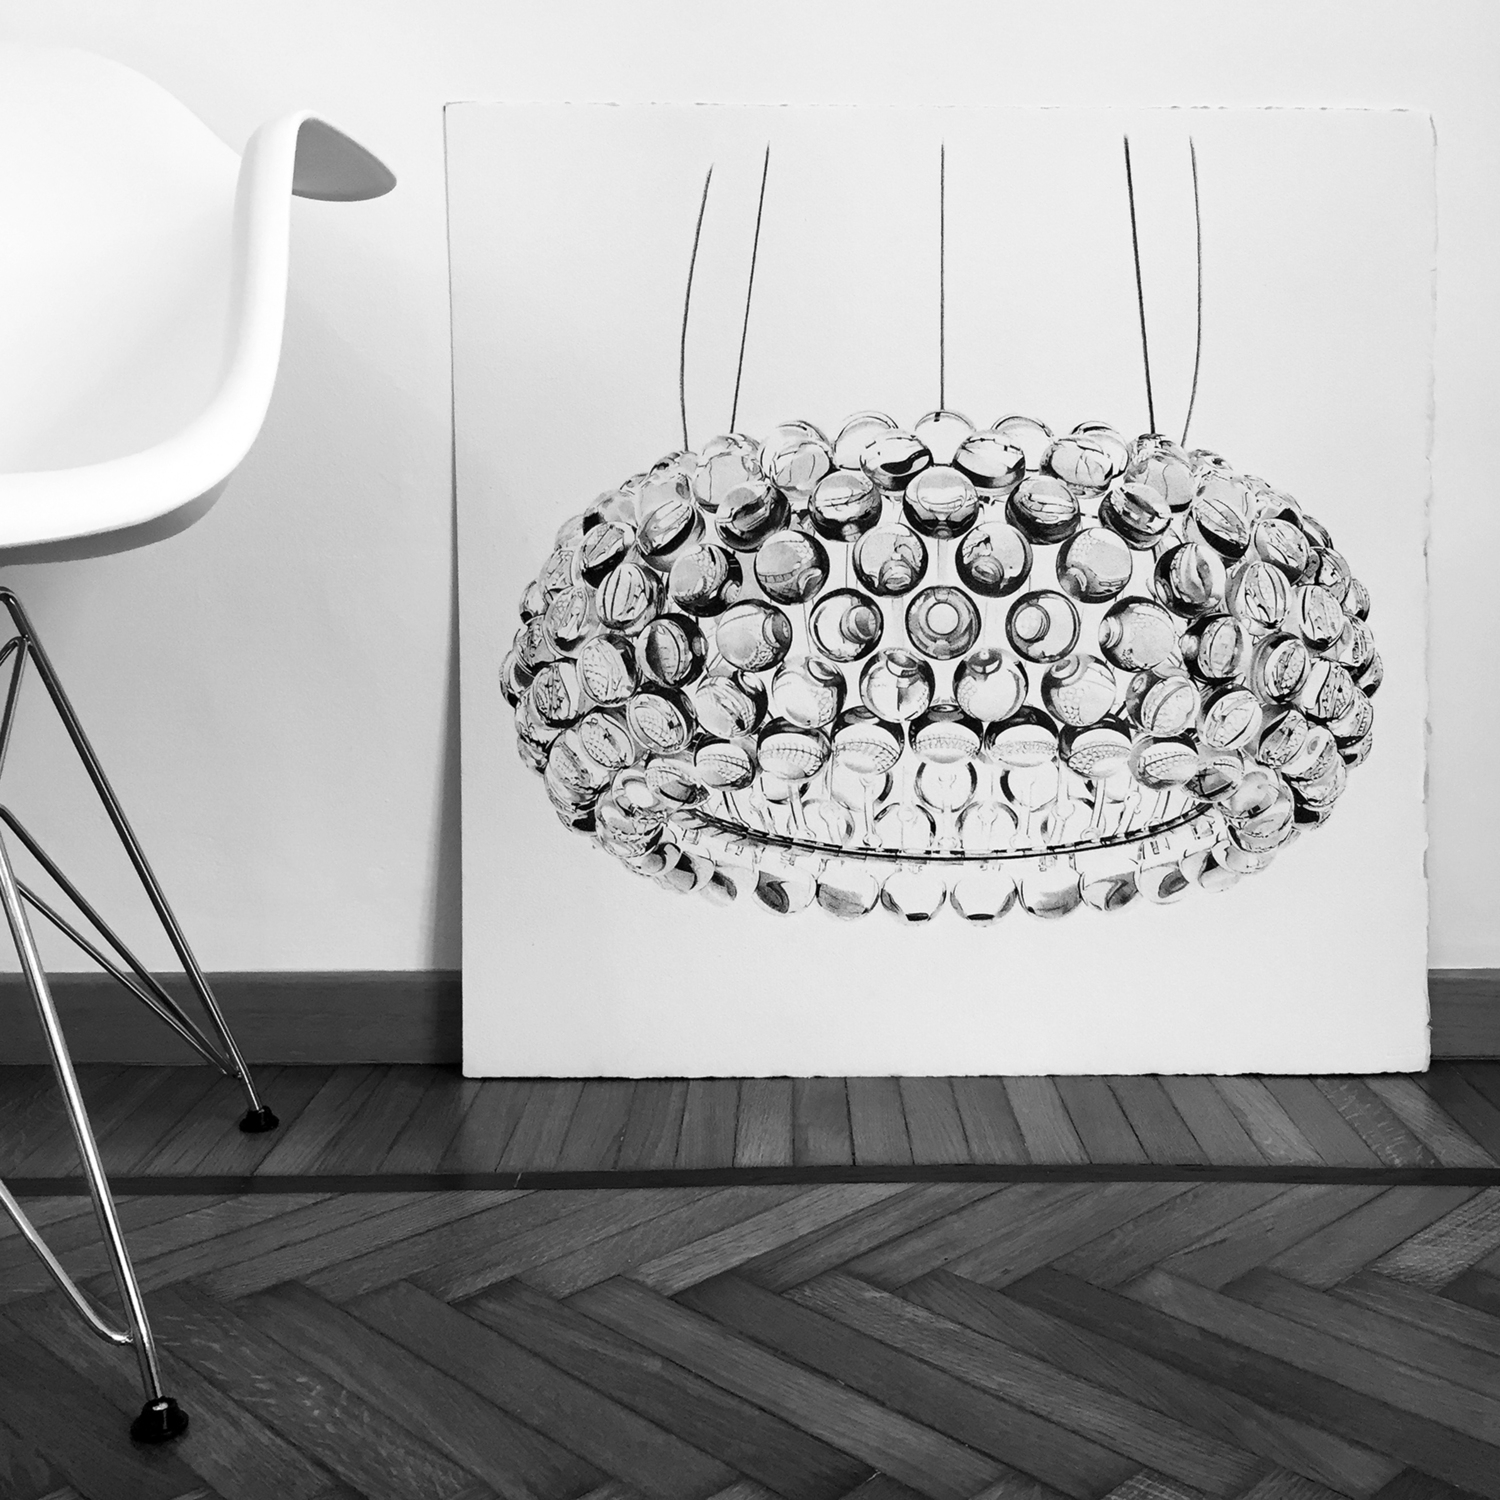 13-Caboche-Lamp-Alessandro-Paglia-Photo-Like-Black-and-White-Drawings-www-designstack-co